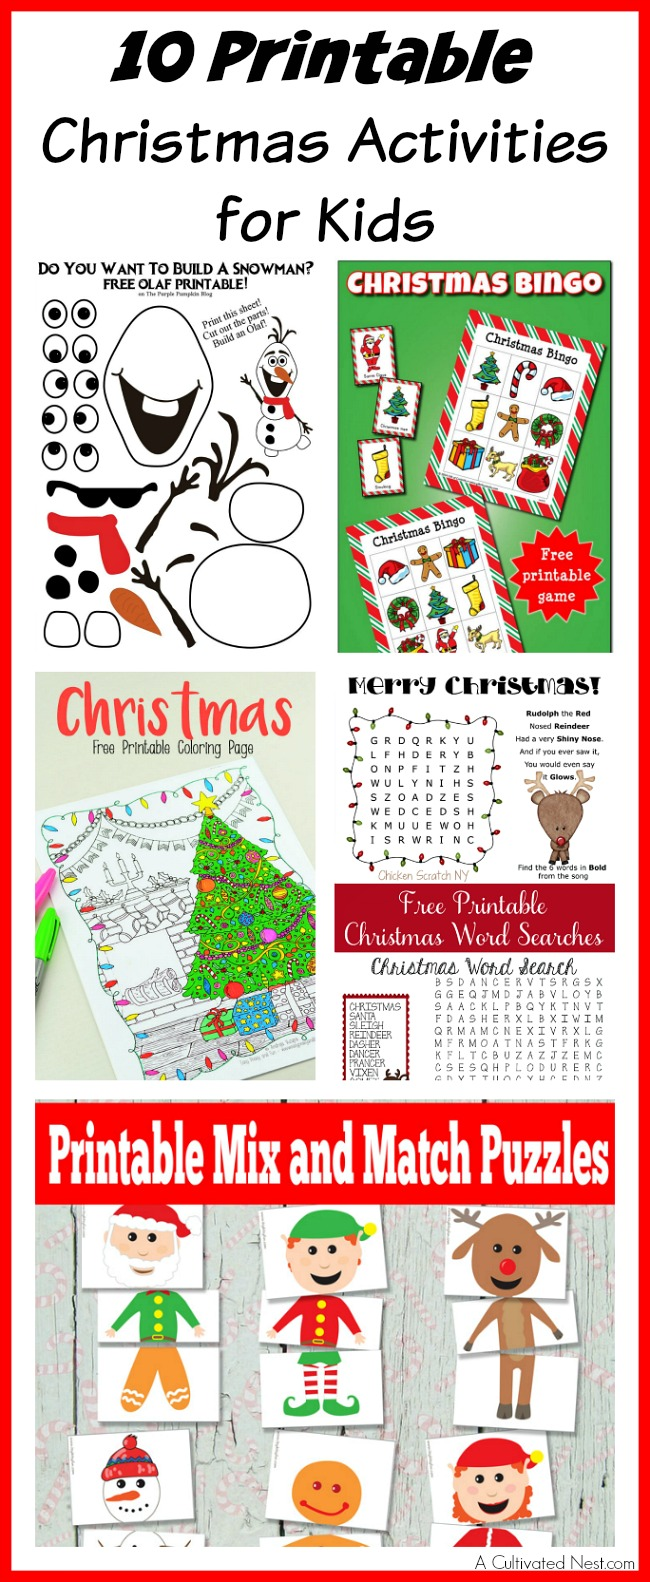 10 Printable Christmas Activities for Kids